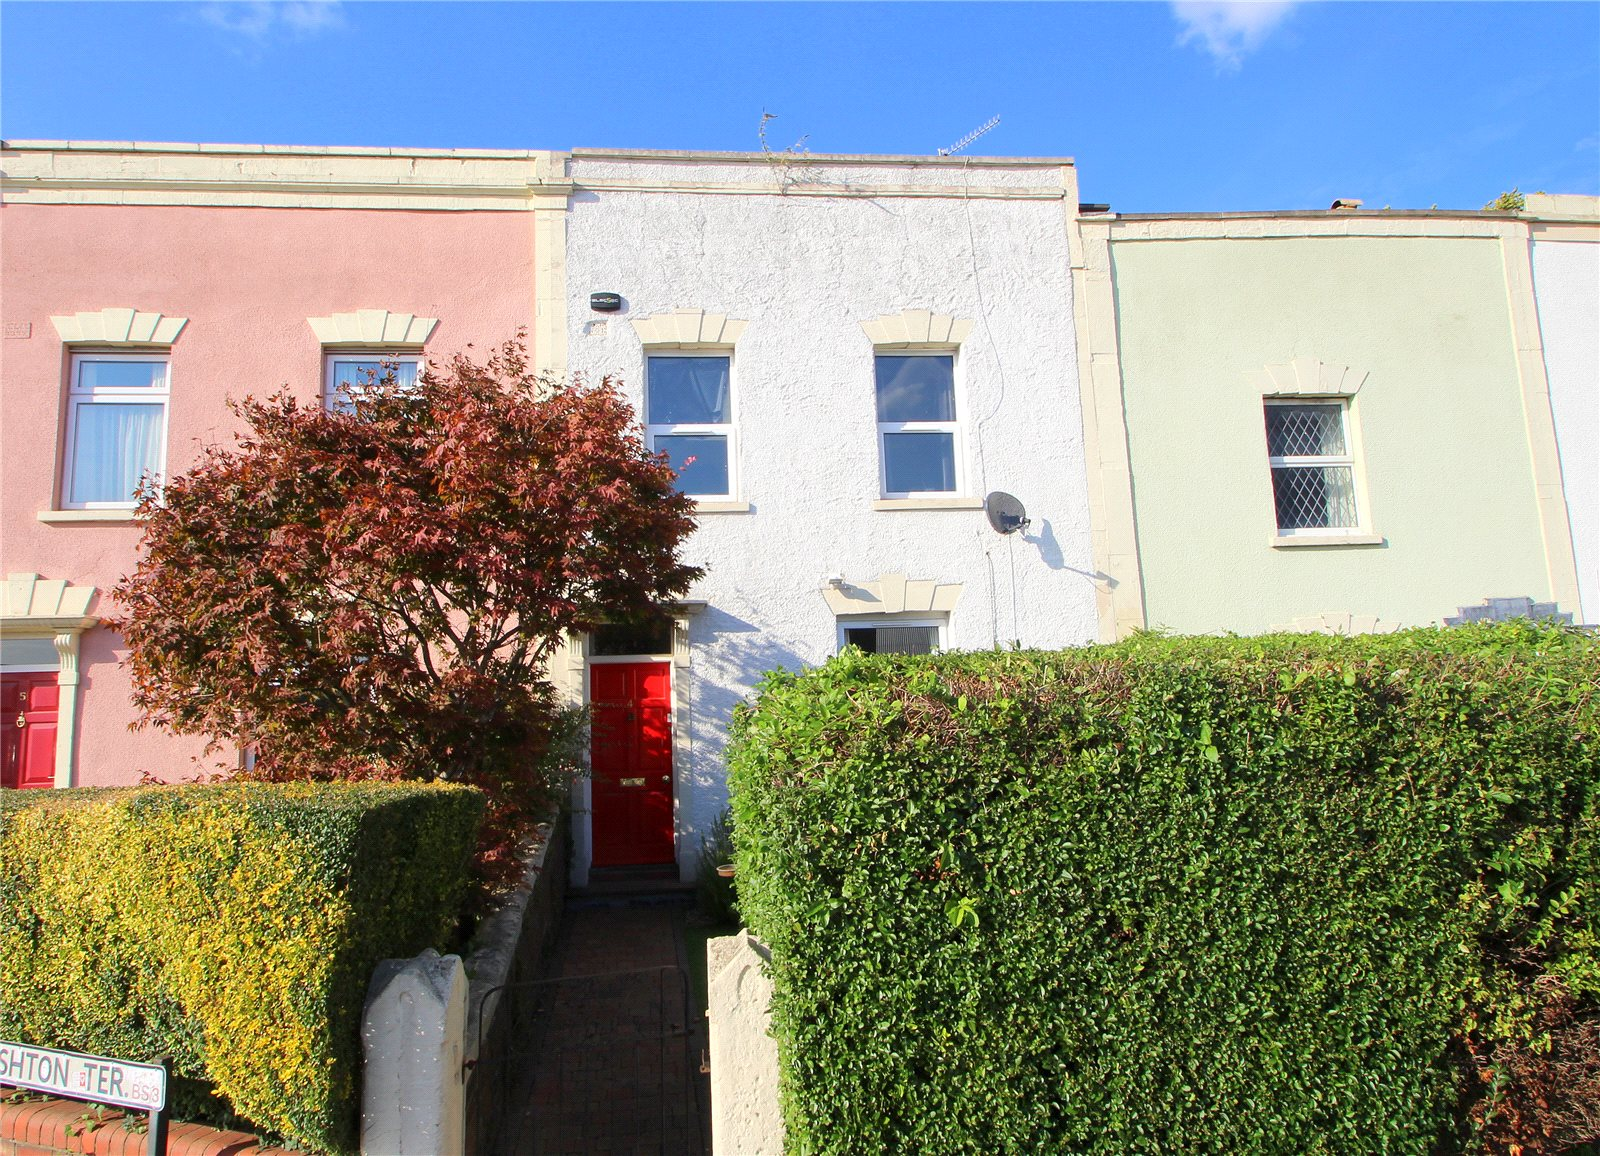 3 Bedrooms Terraced House for sale in Bower Ashton Terrace Ashton Gate Bristol BS3